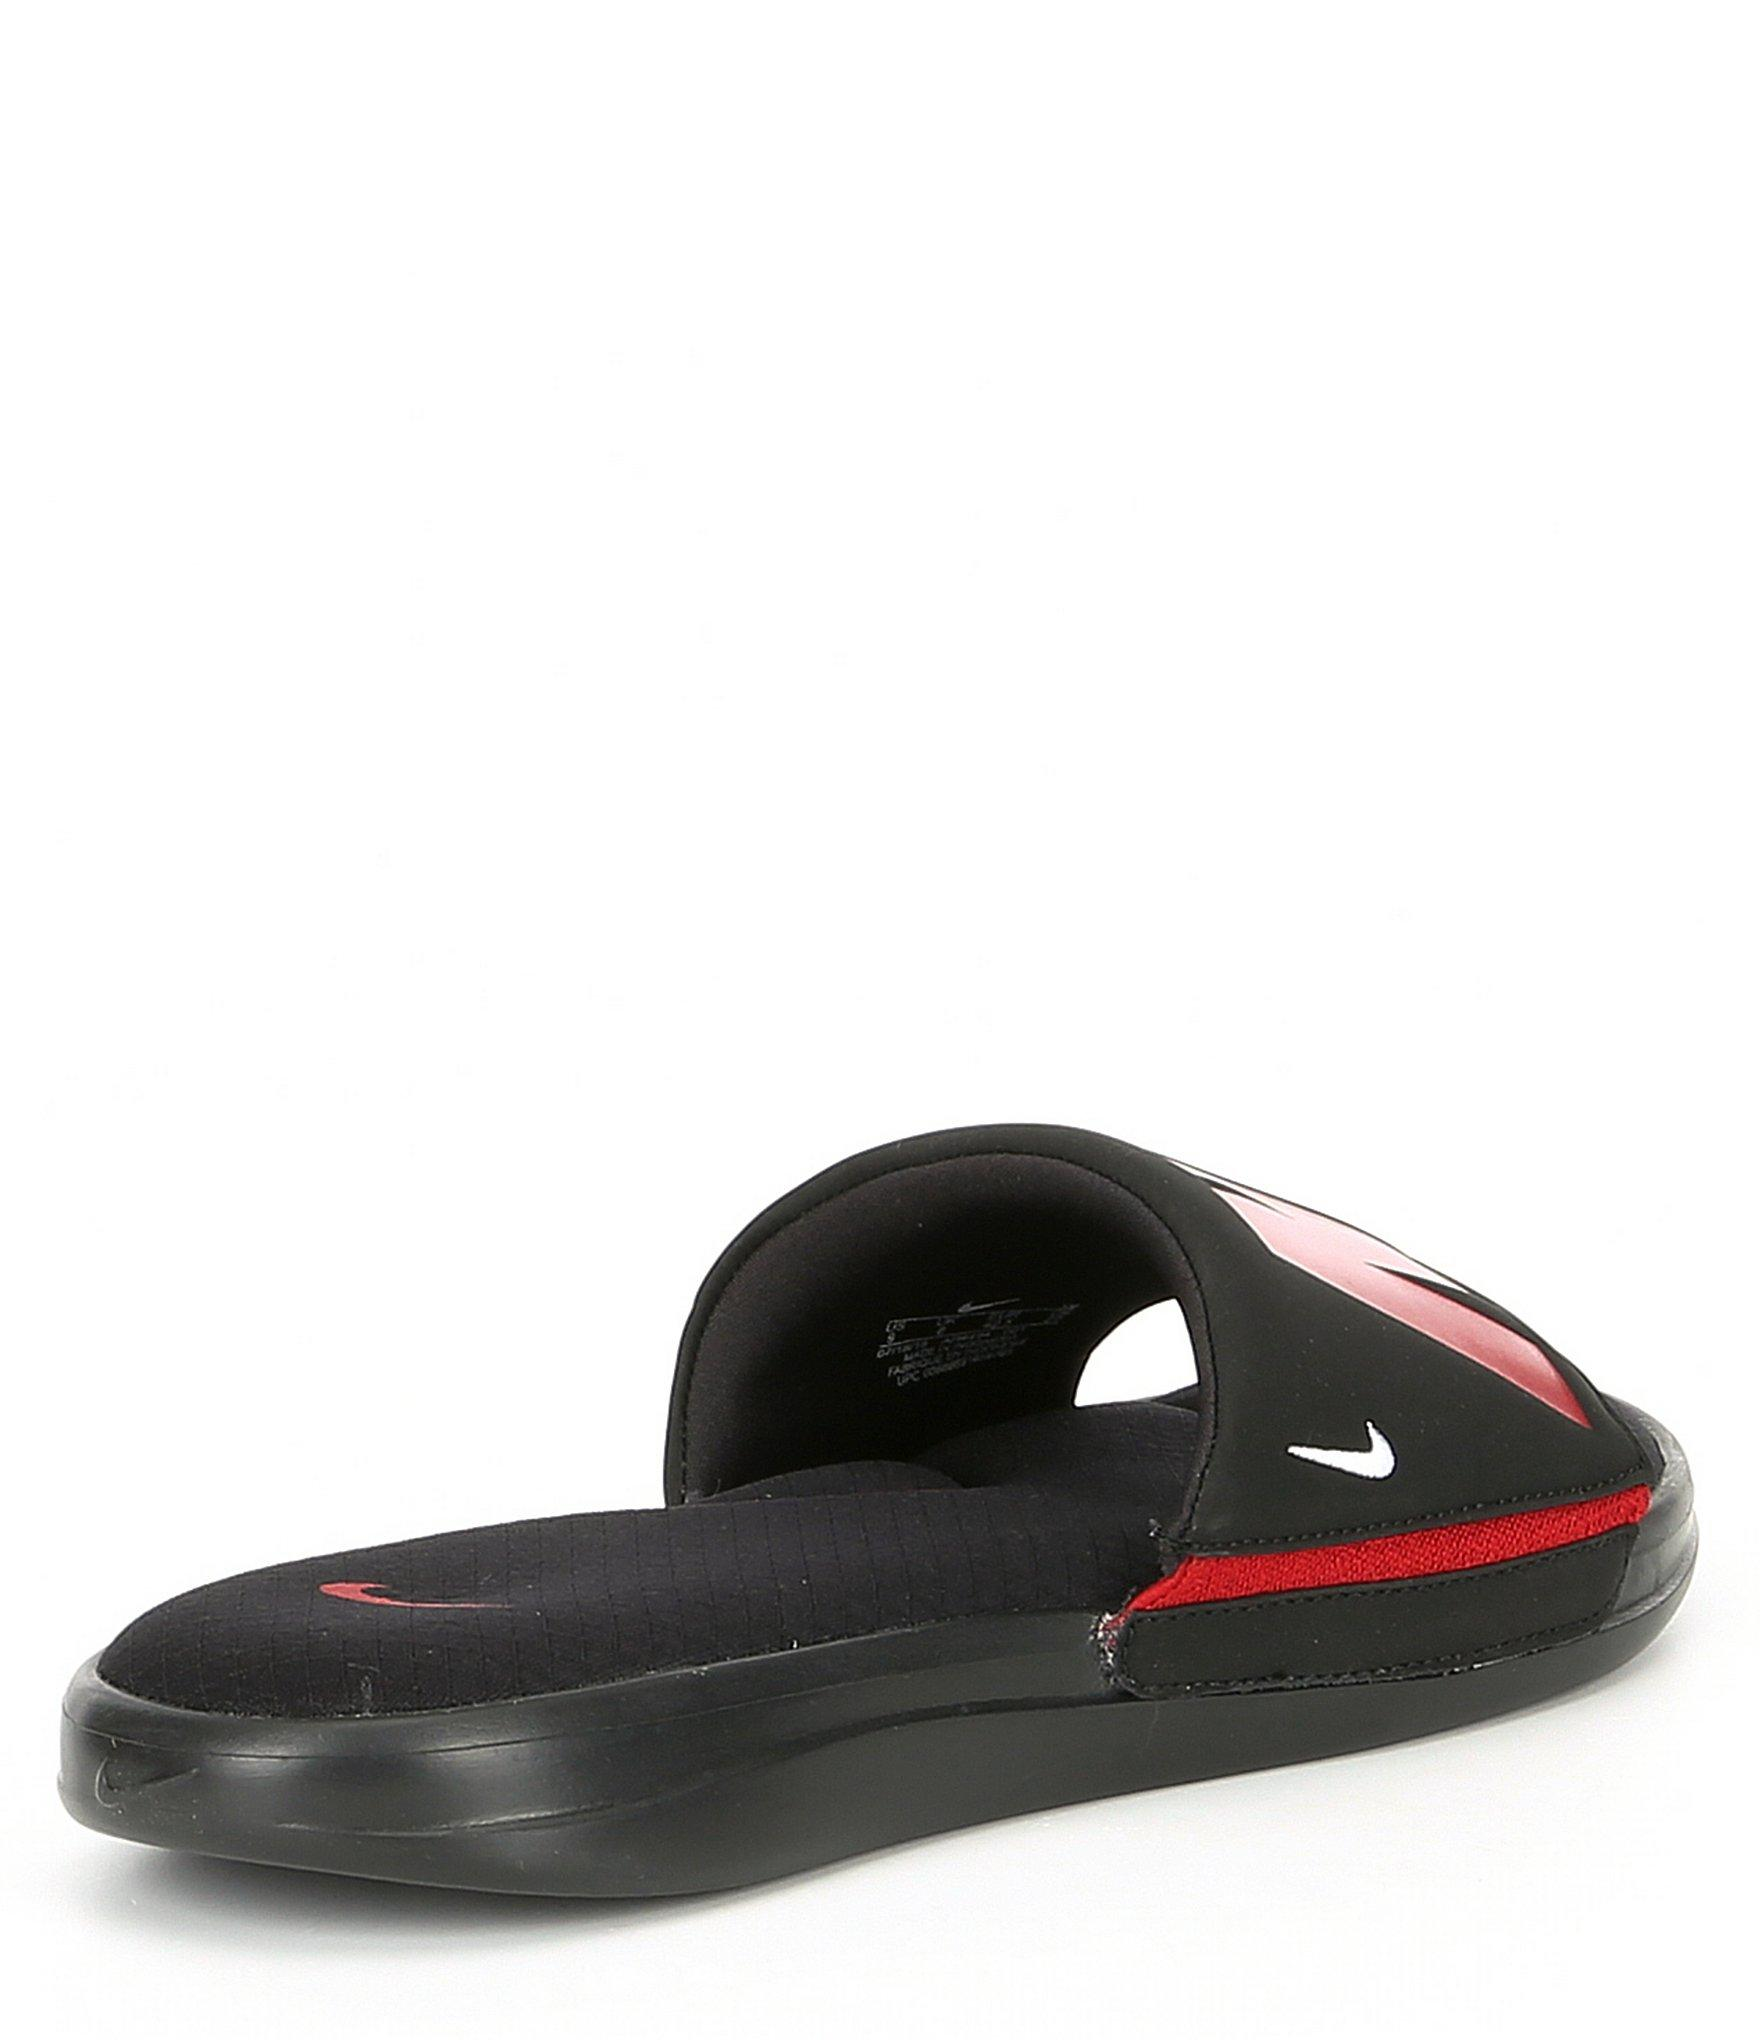 5ea0a9e02925 Nike Ultra Comfort 3 Slide Sandal in Black for Men - Lyst